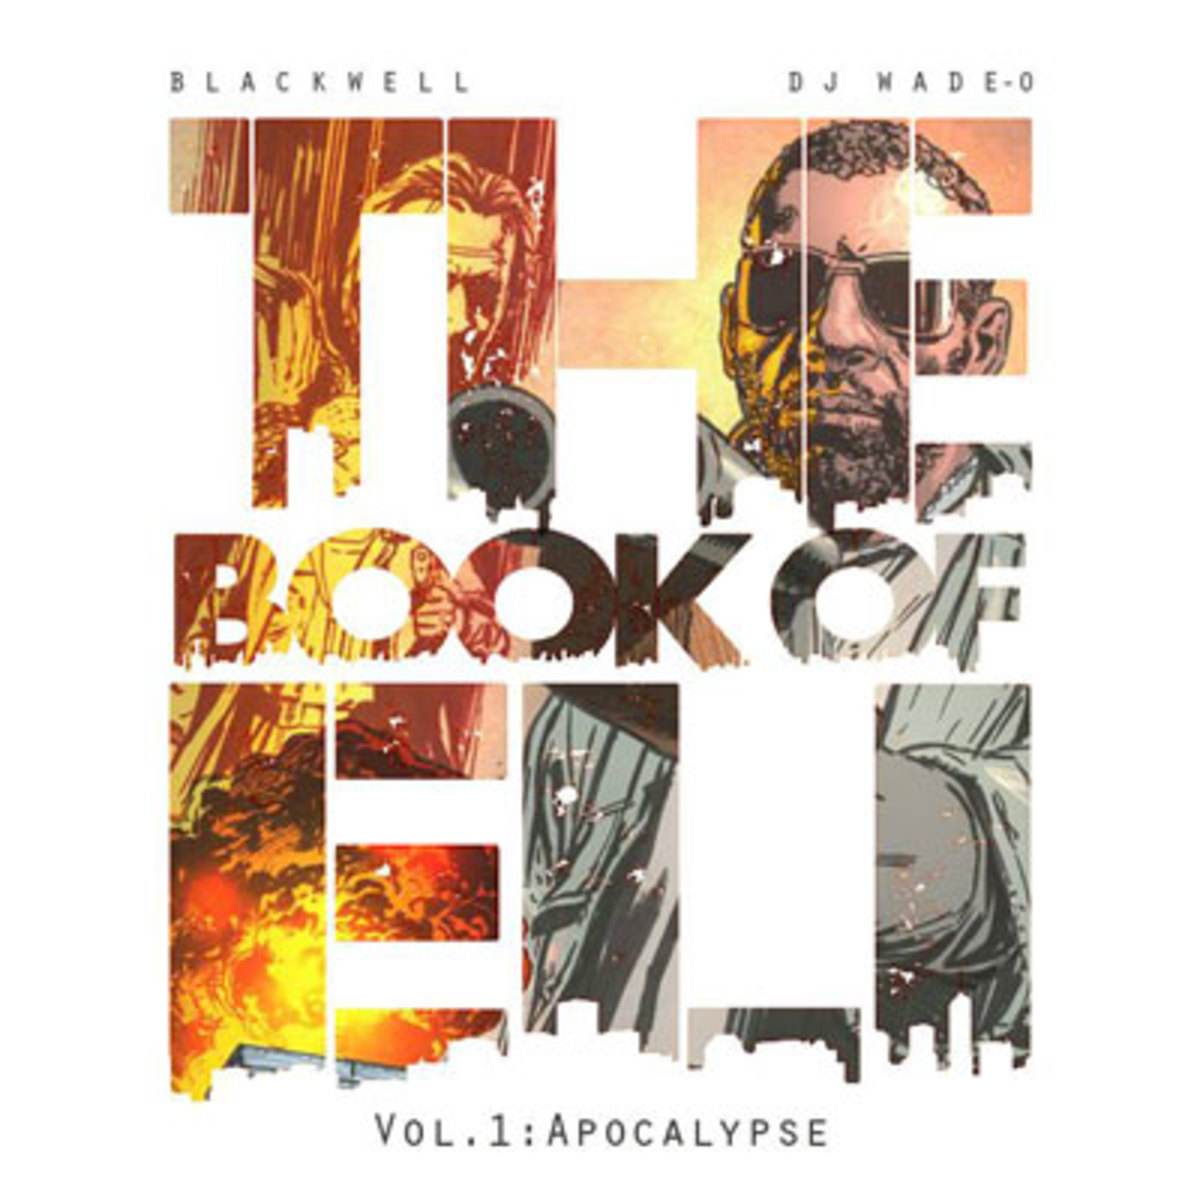 blackwell-bookofeli.jpg